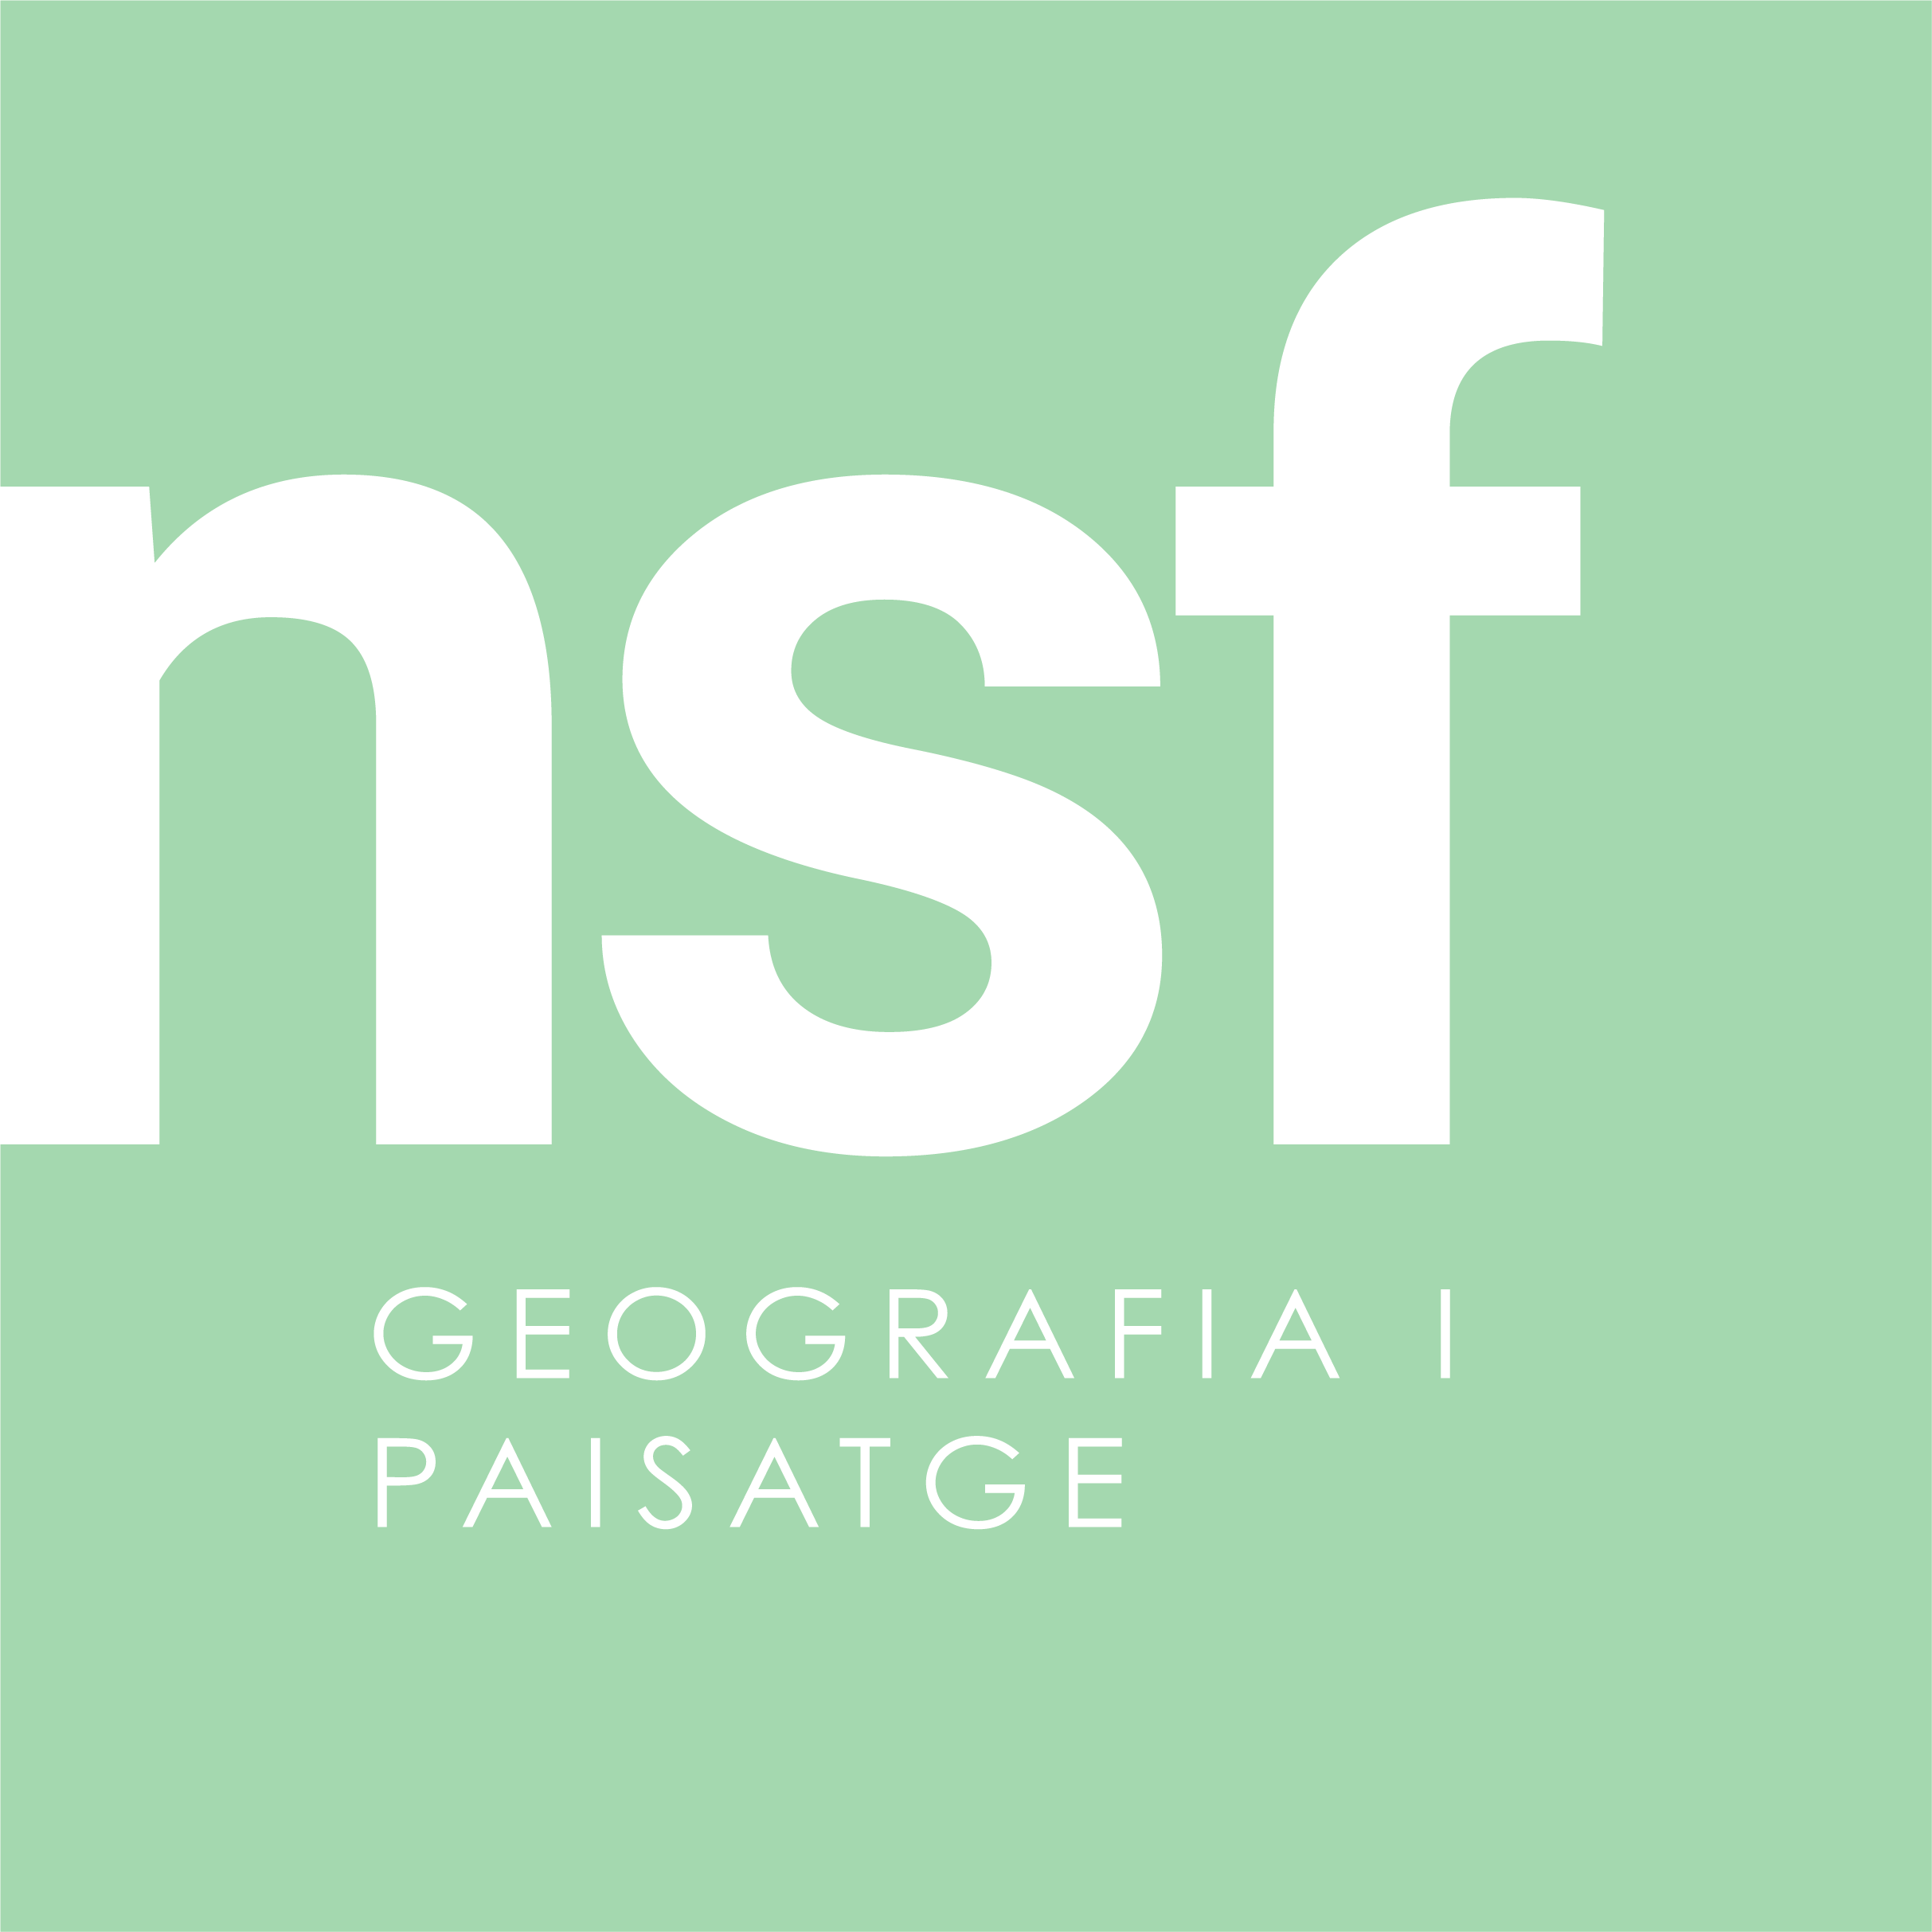 nsfconsulting